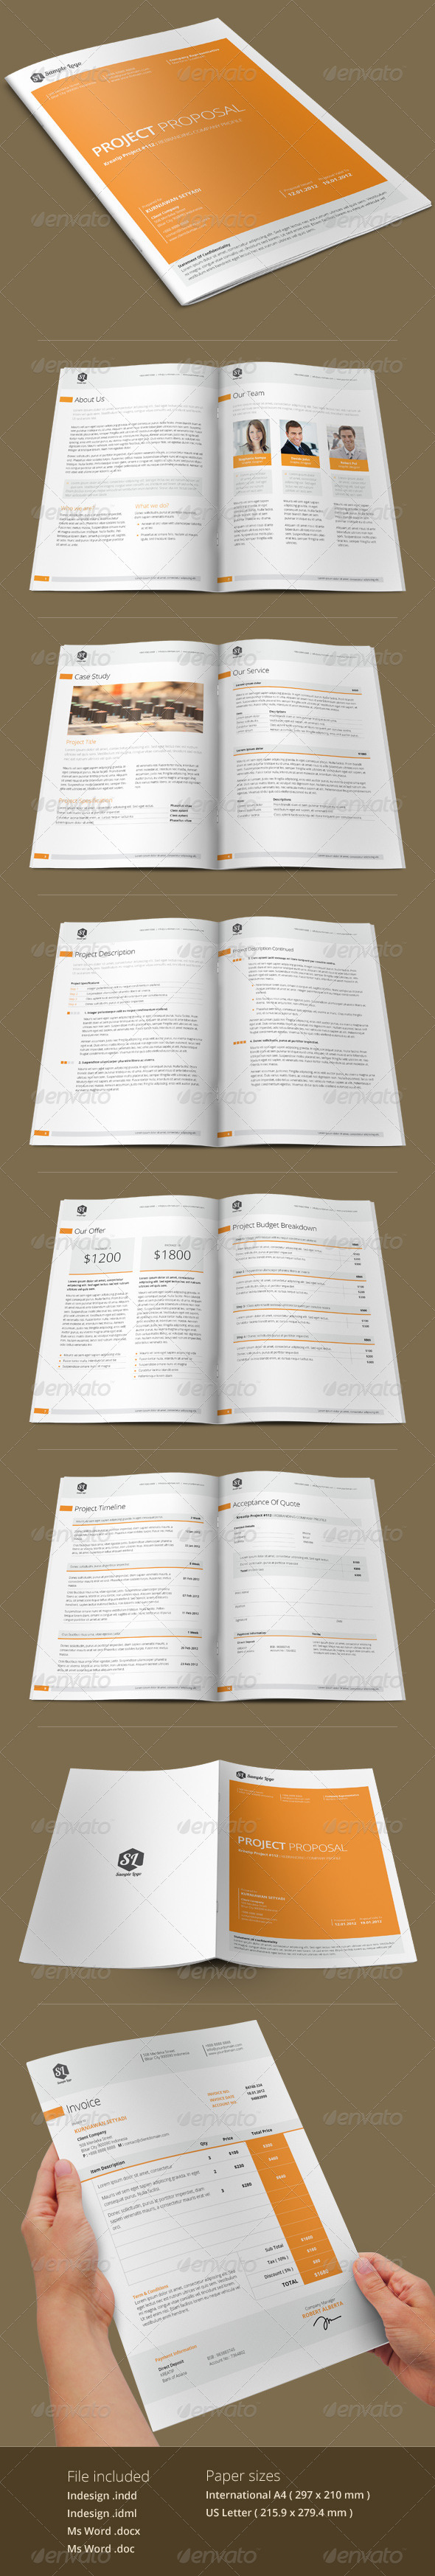 GraphicRiver Kreatip Proposal Template 5738320